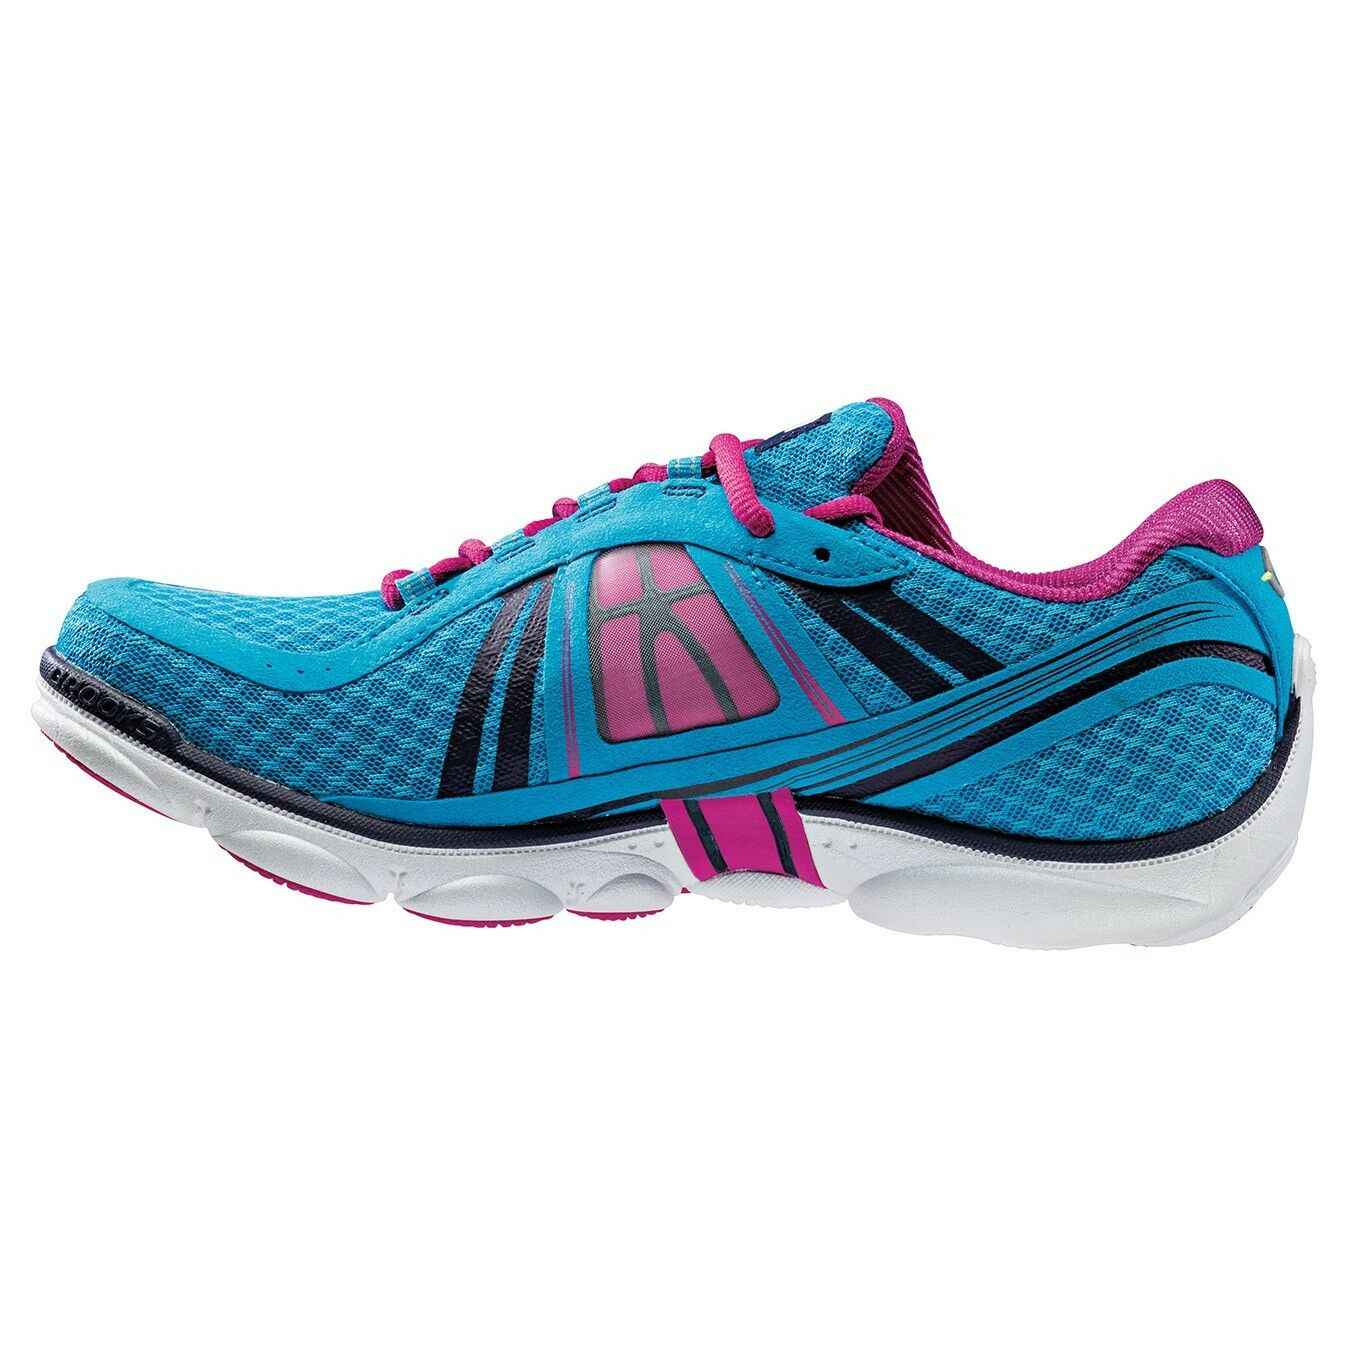 Brooks Pureconnect 3 Womens Running shoes (B) (524)     180.00